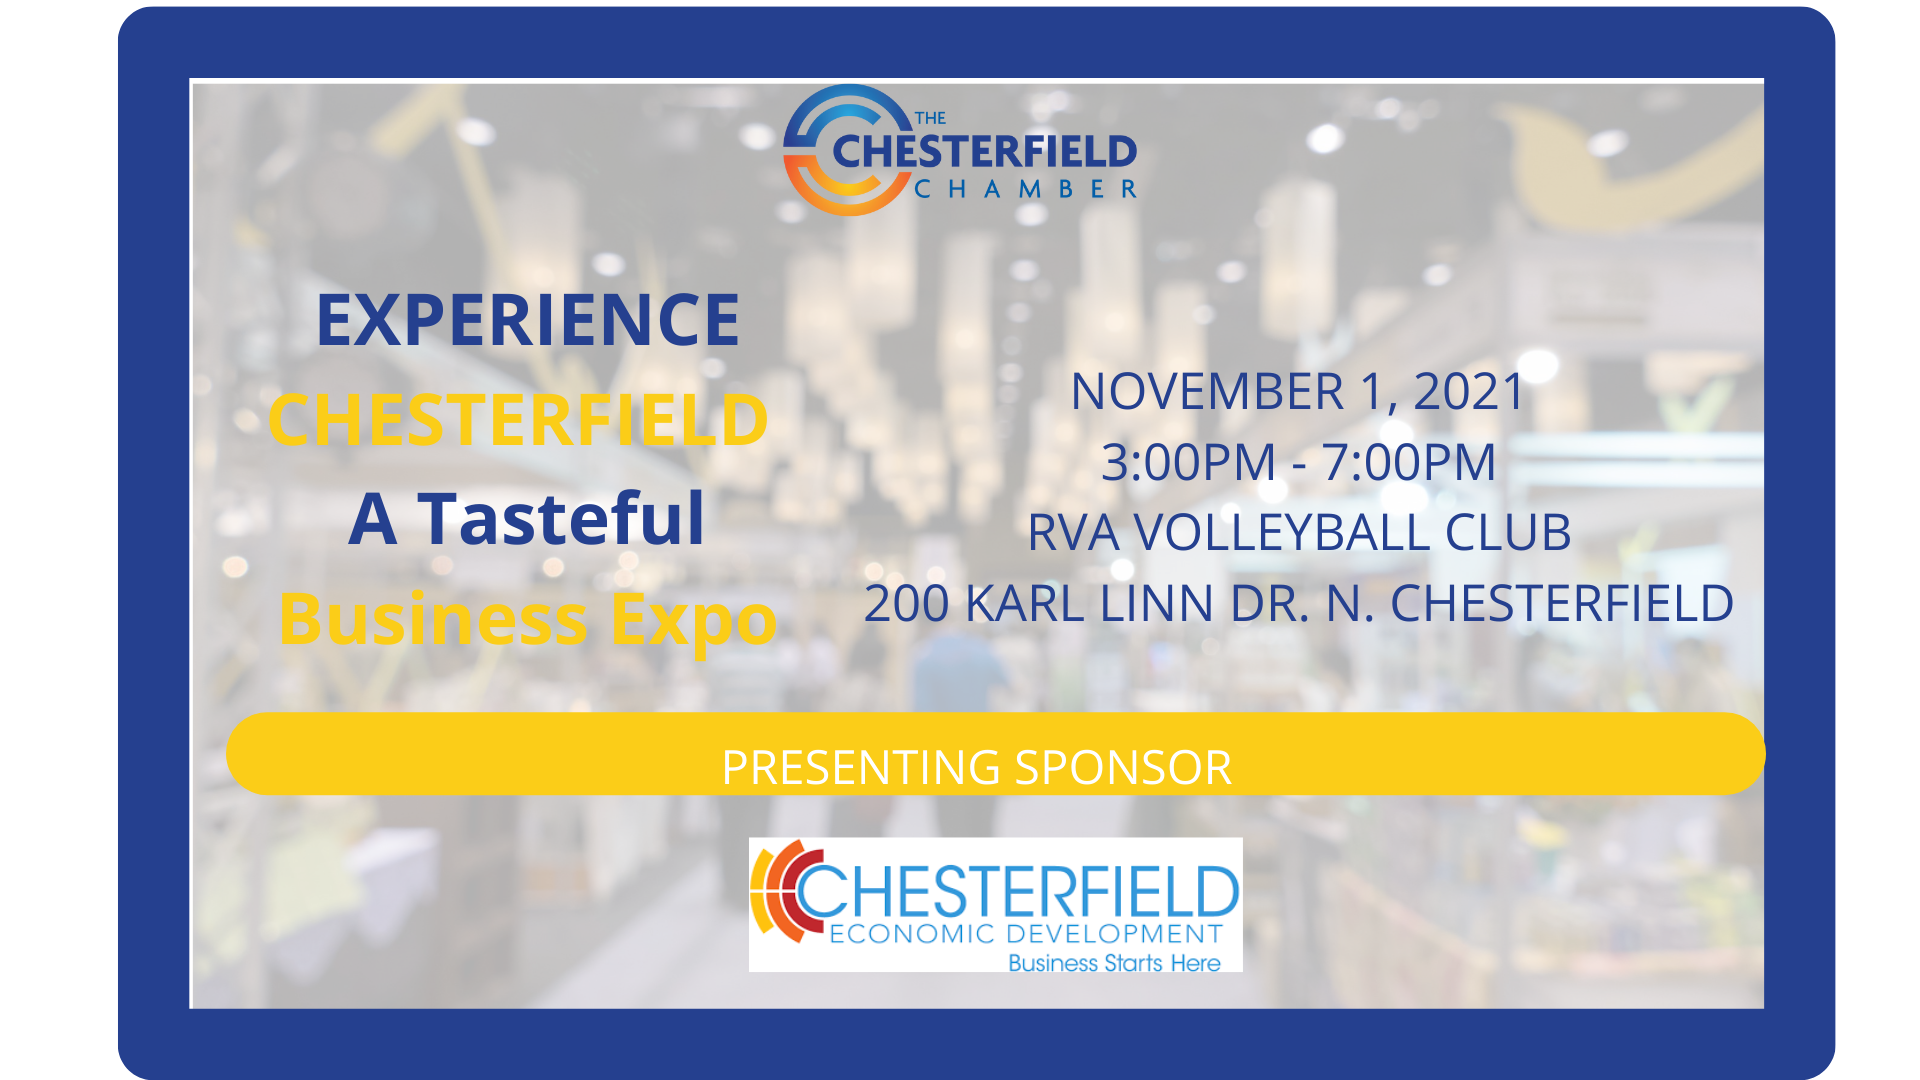 EXPERIENCE-CHESTERFIELD-A-TASTEFUL-BUSINESS-EXPO-(Video)-(Presentation).png